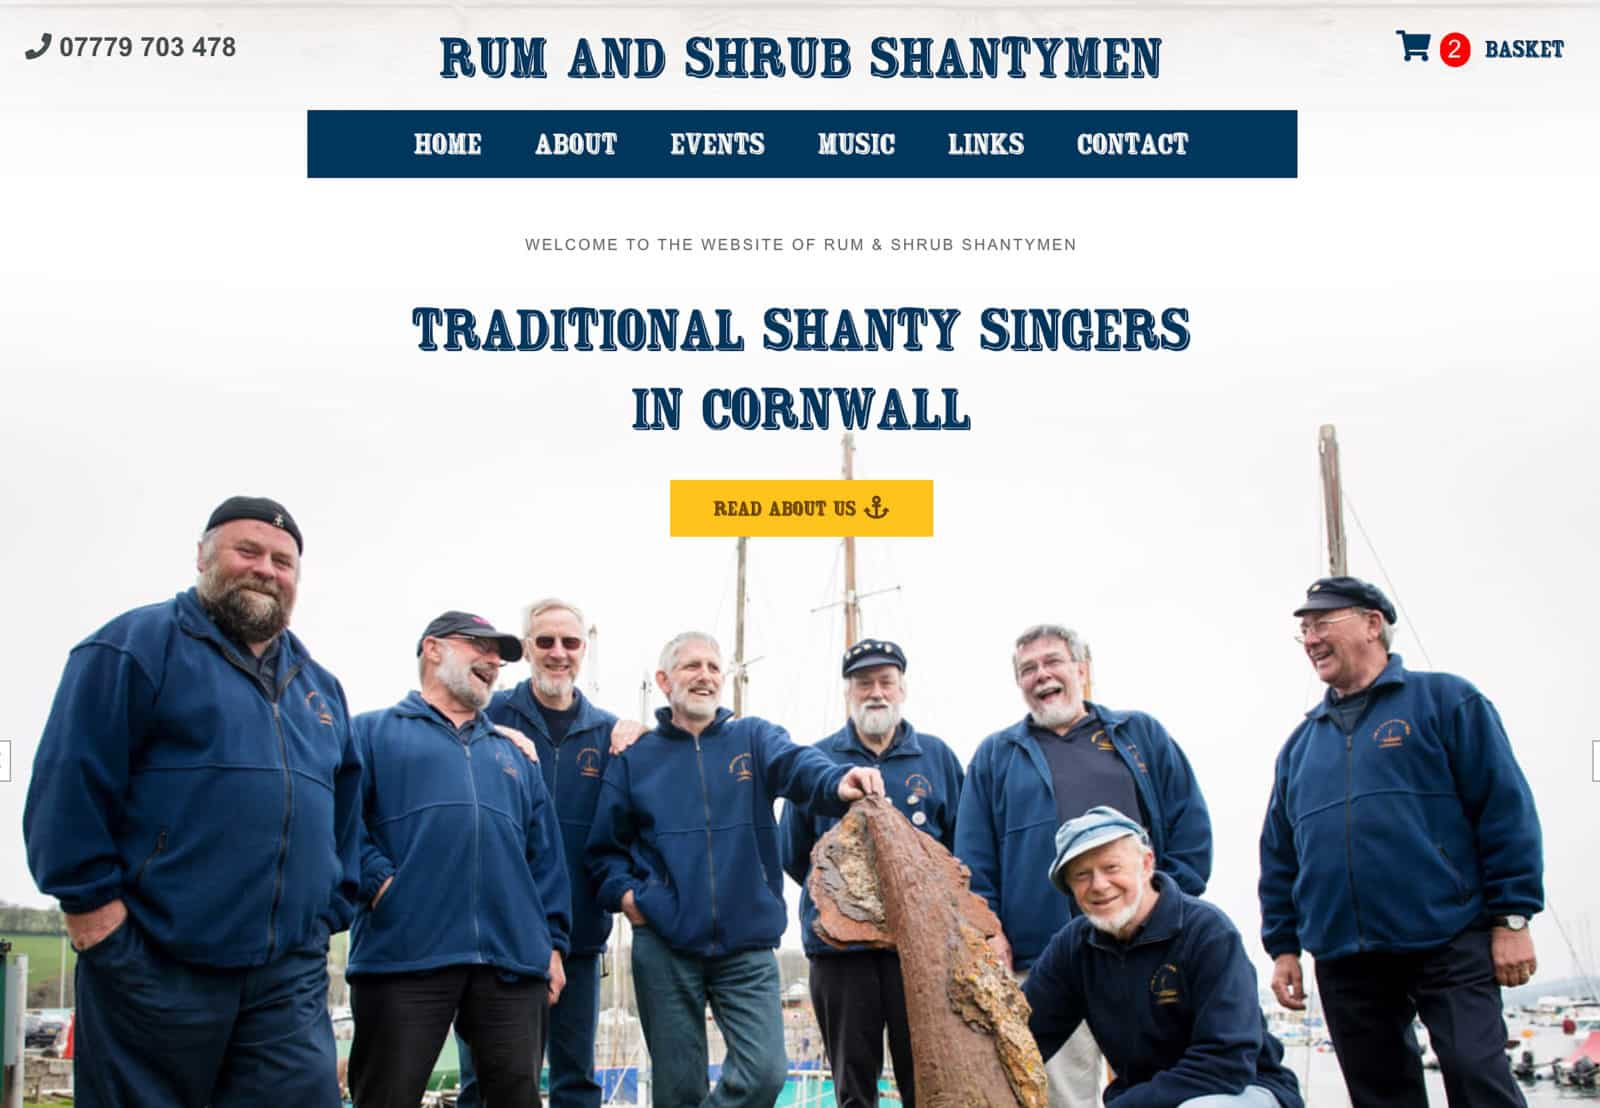 Website Design for Rum & Shrub Shantymen - the finest shanty singers in Cornwall!